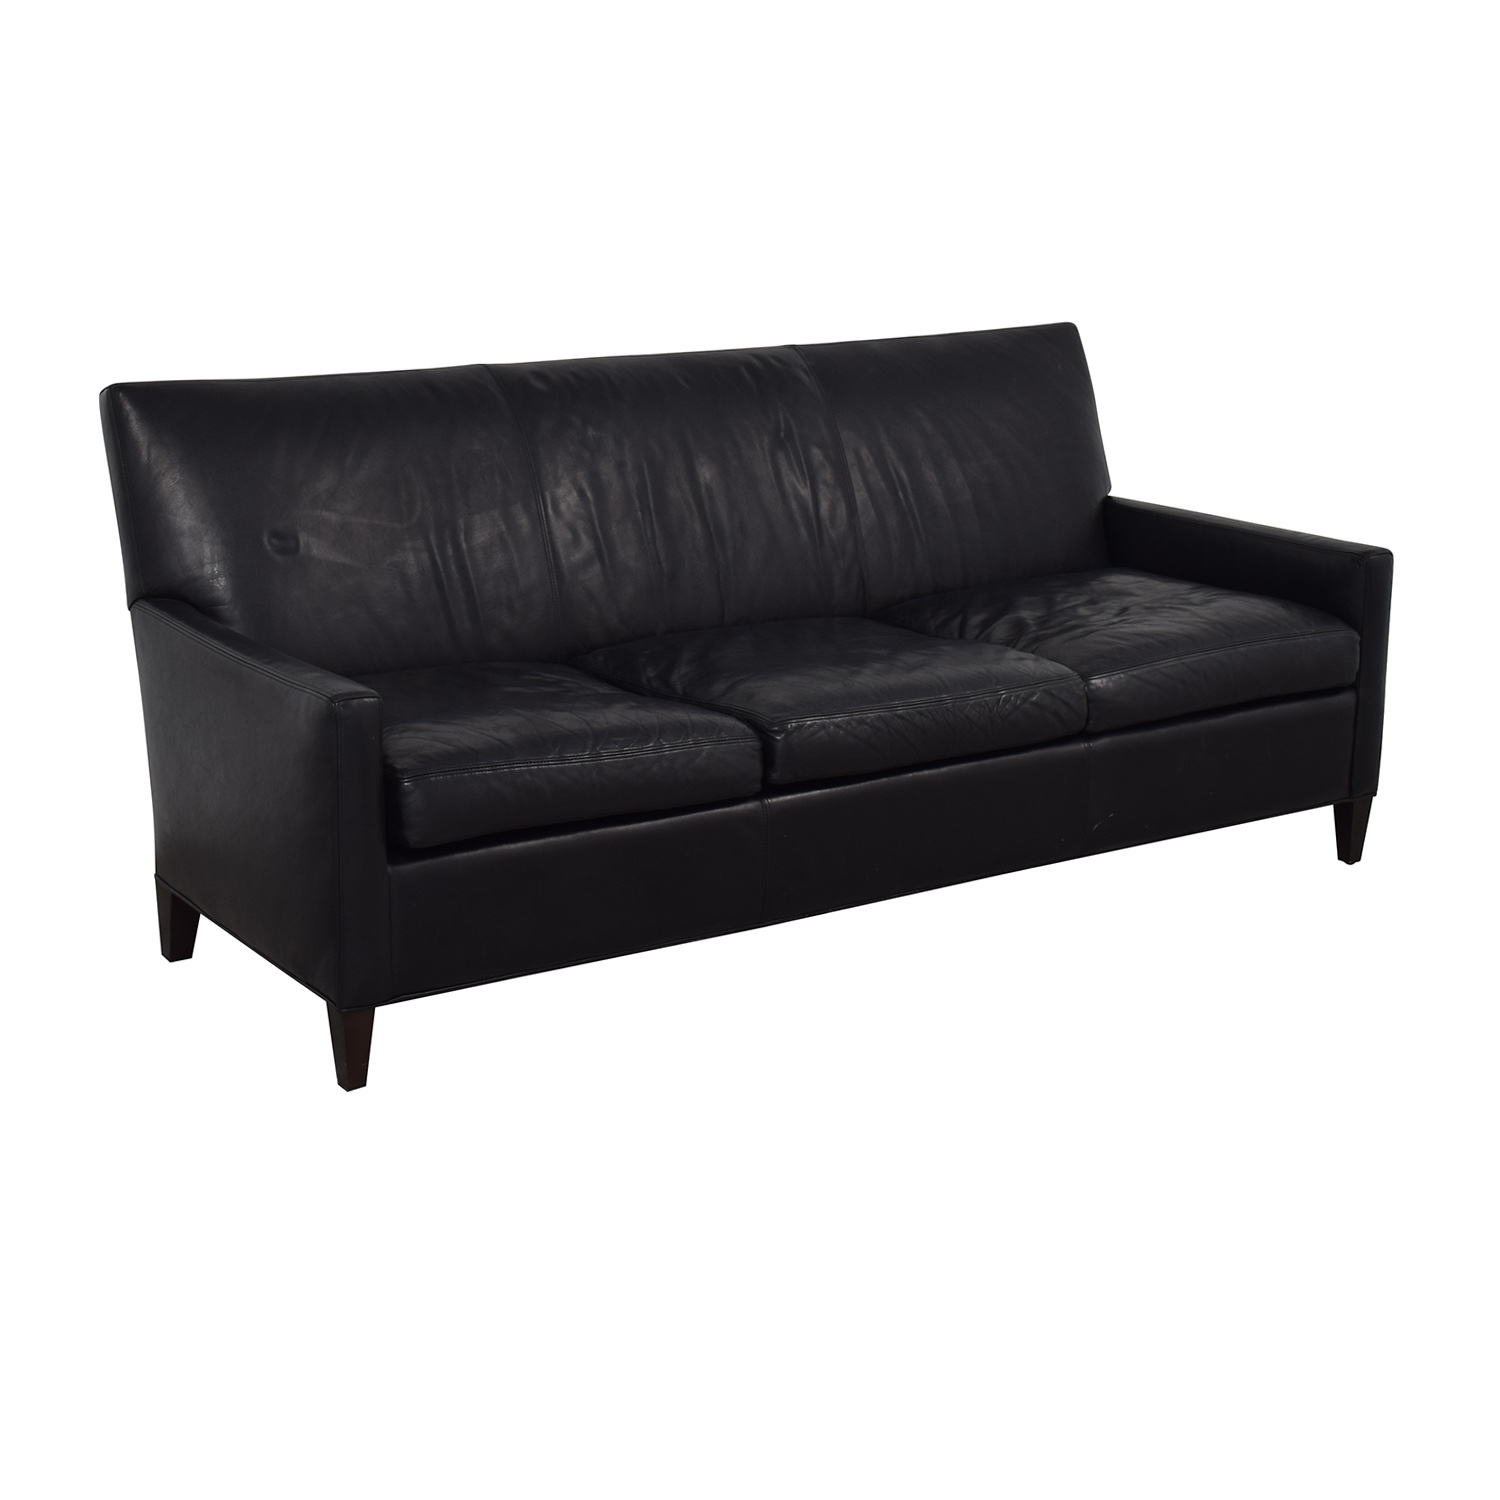 56% OFF - Crate & Barrel Crate & Barrel Black Leather Sofa / Sofas